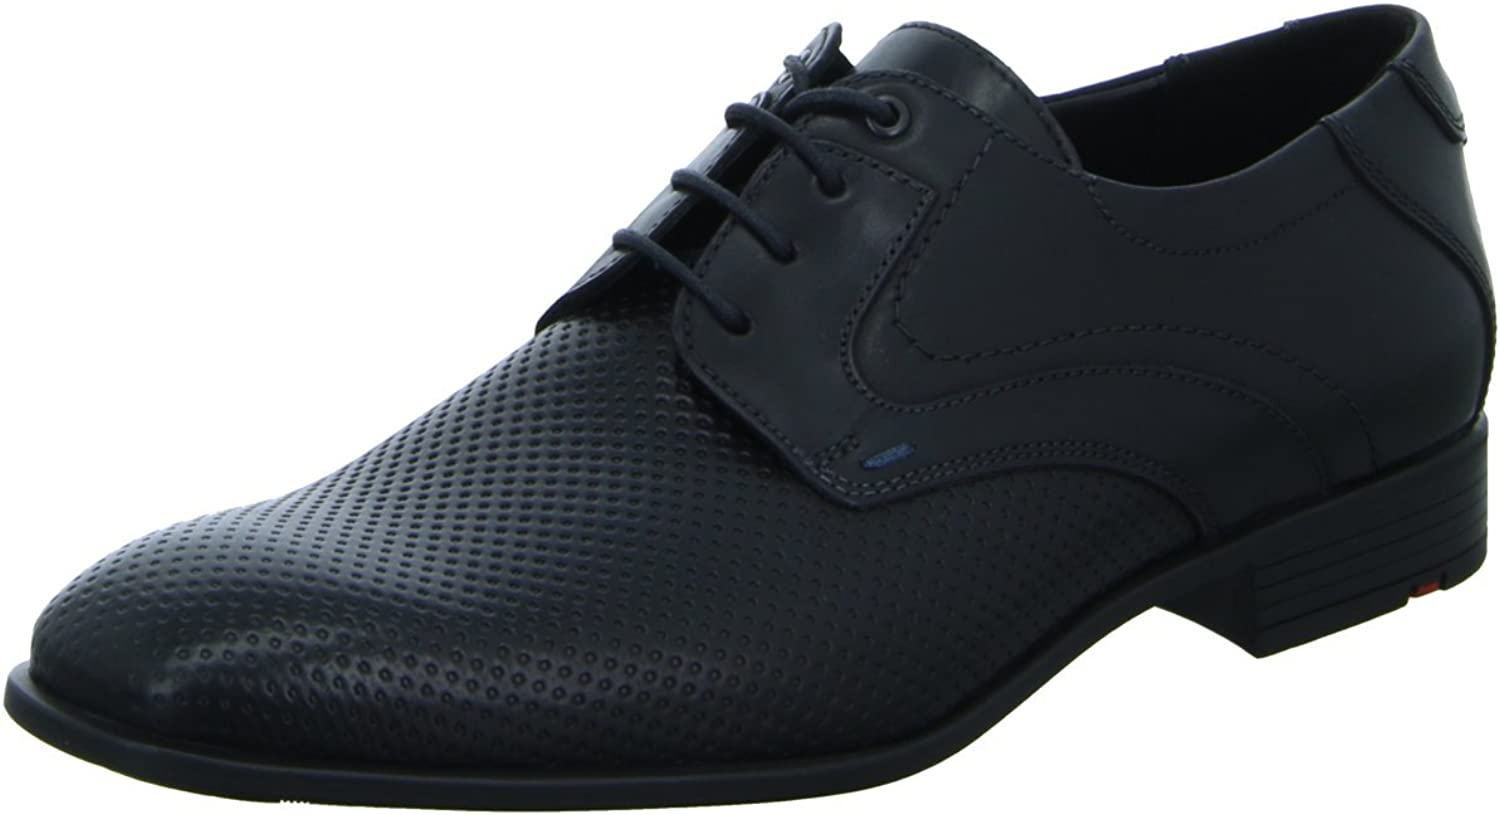 LLOYD DARION 1704930 Mens Lace-Up shoes